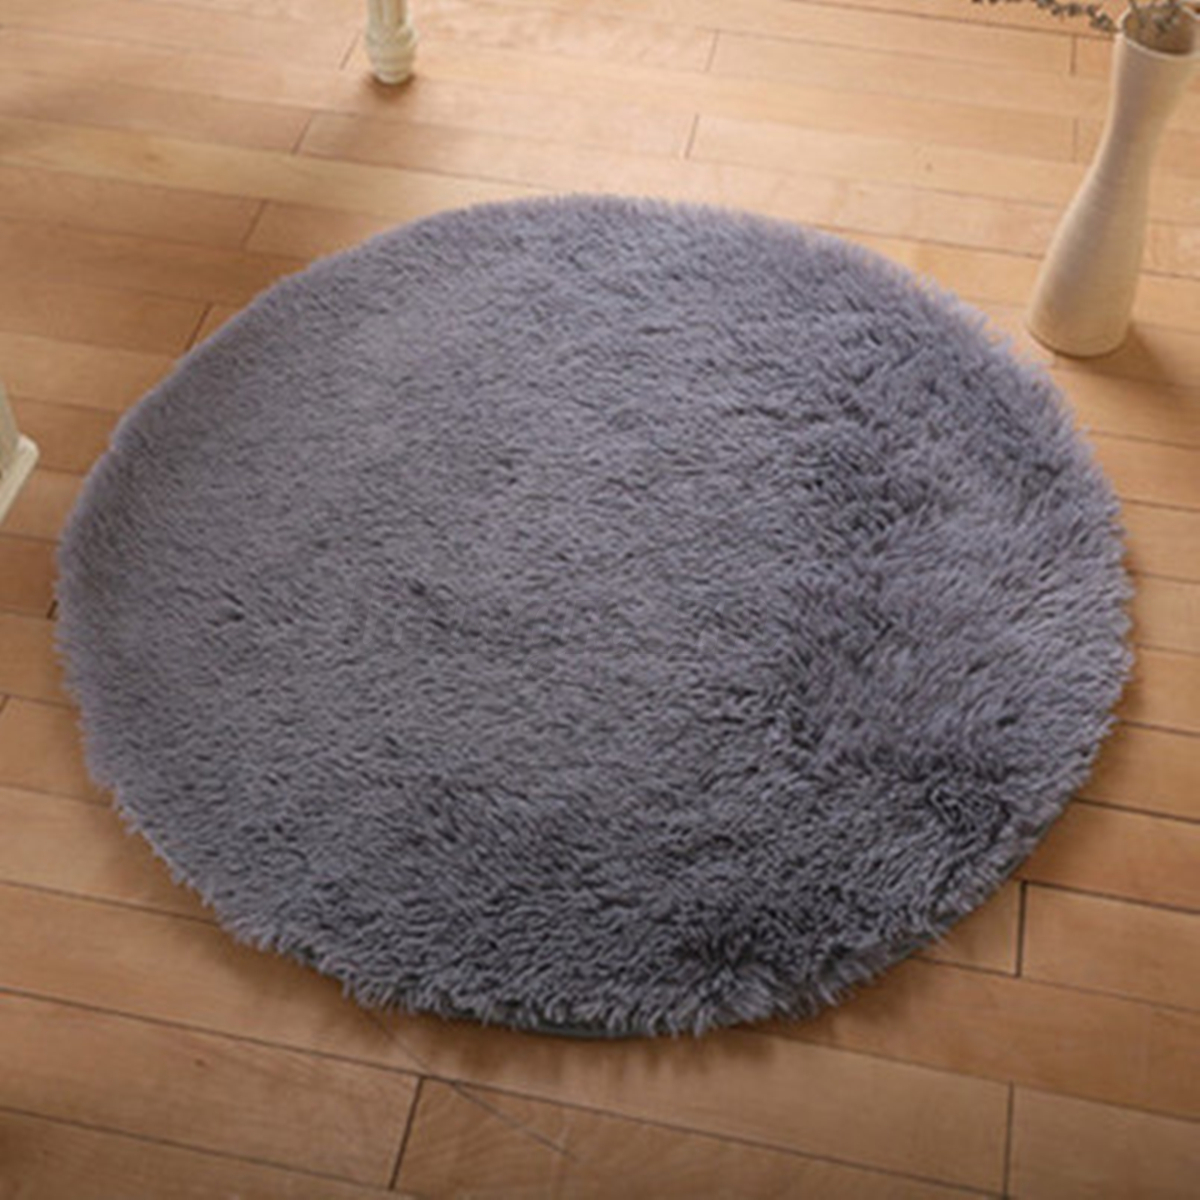 0.4-2M Fluffy Rugs Anti-Skid Shaggy Area Rug Home Bedroom